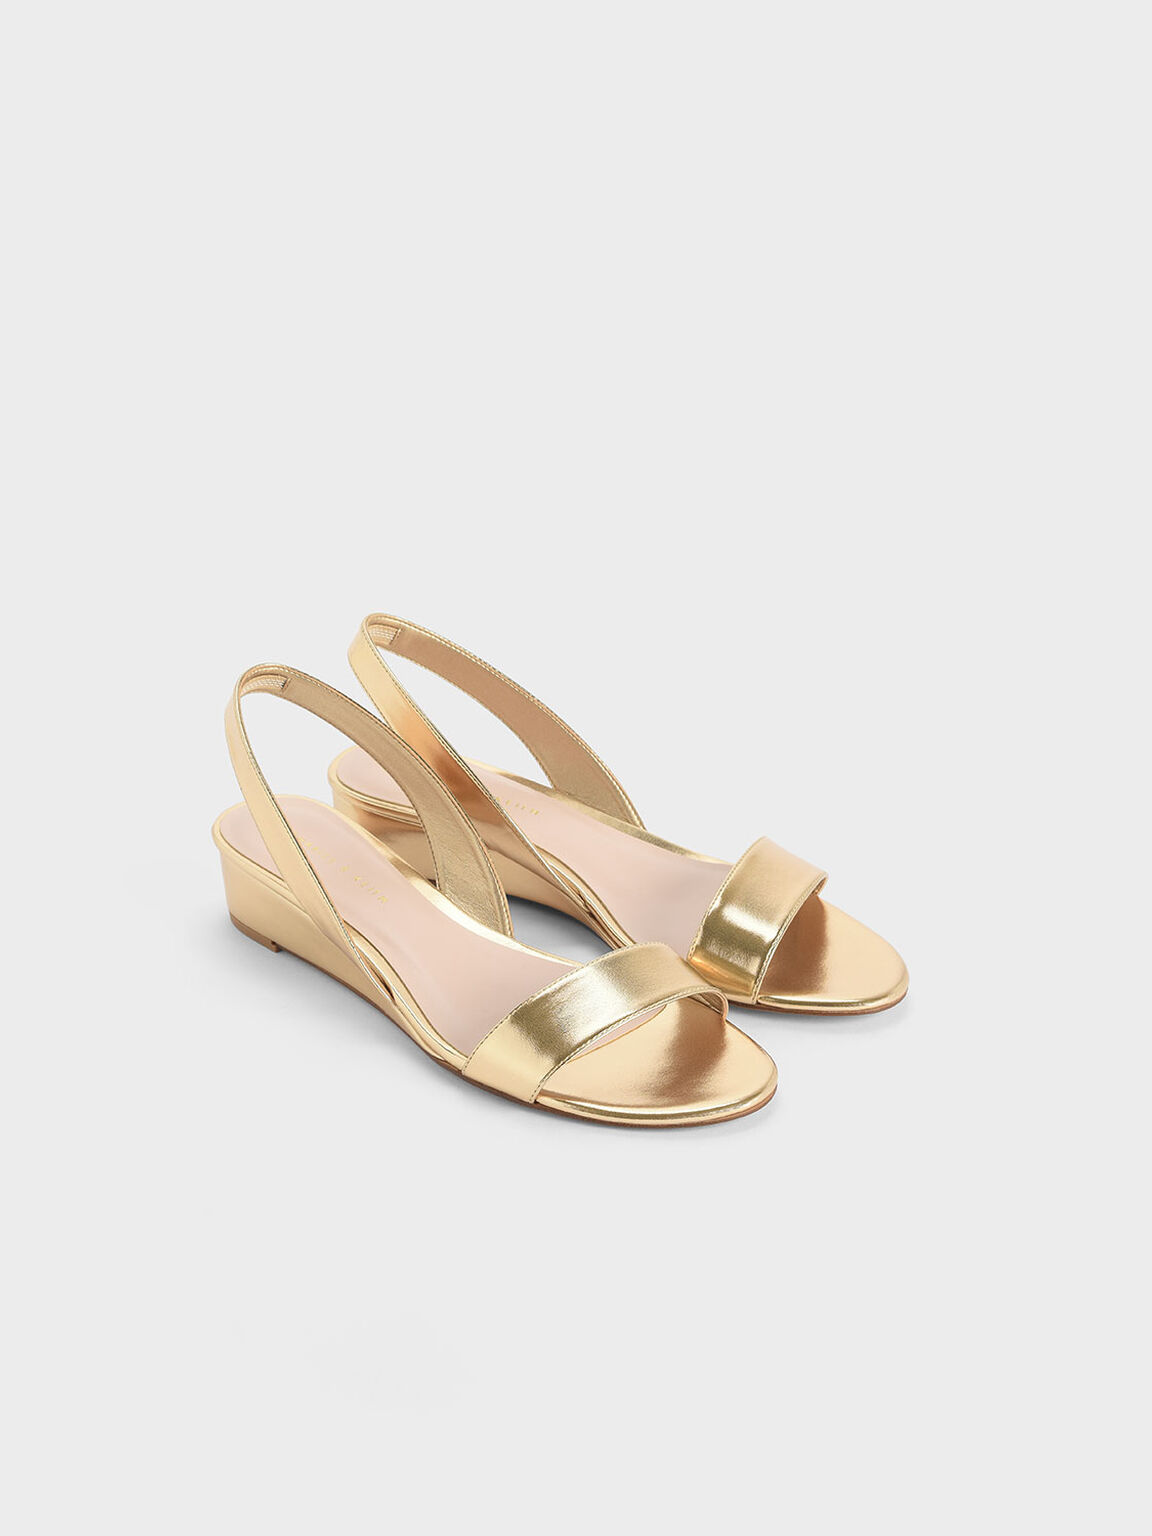 Metallic Low Slingback Wedges, Gold, hi-res